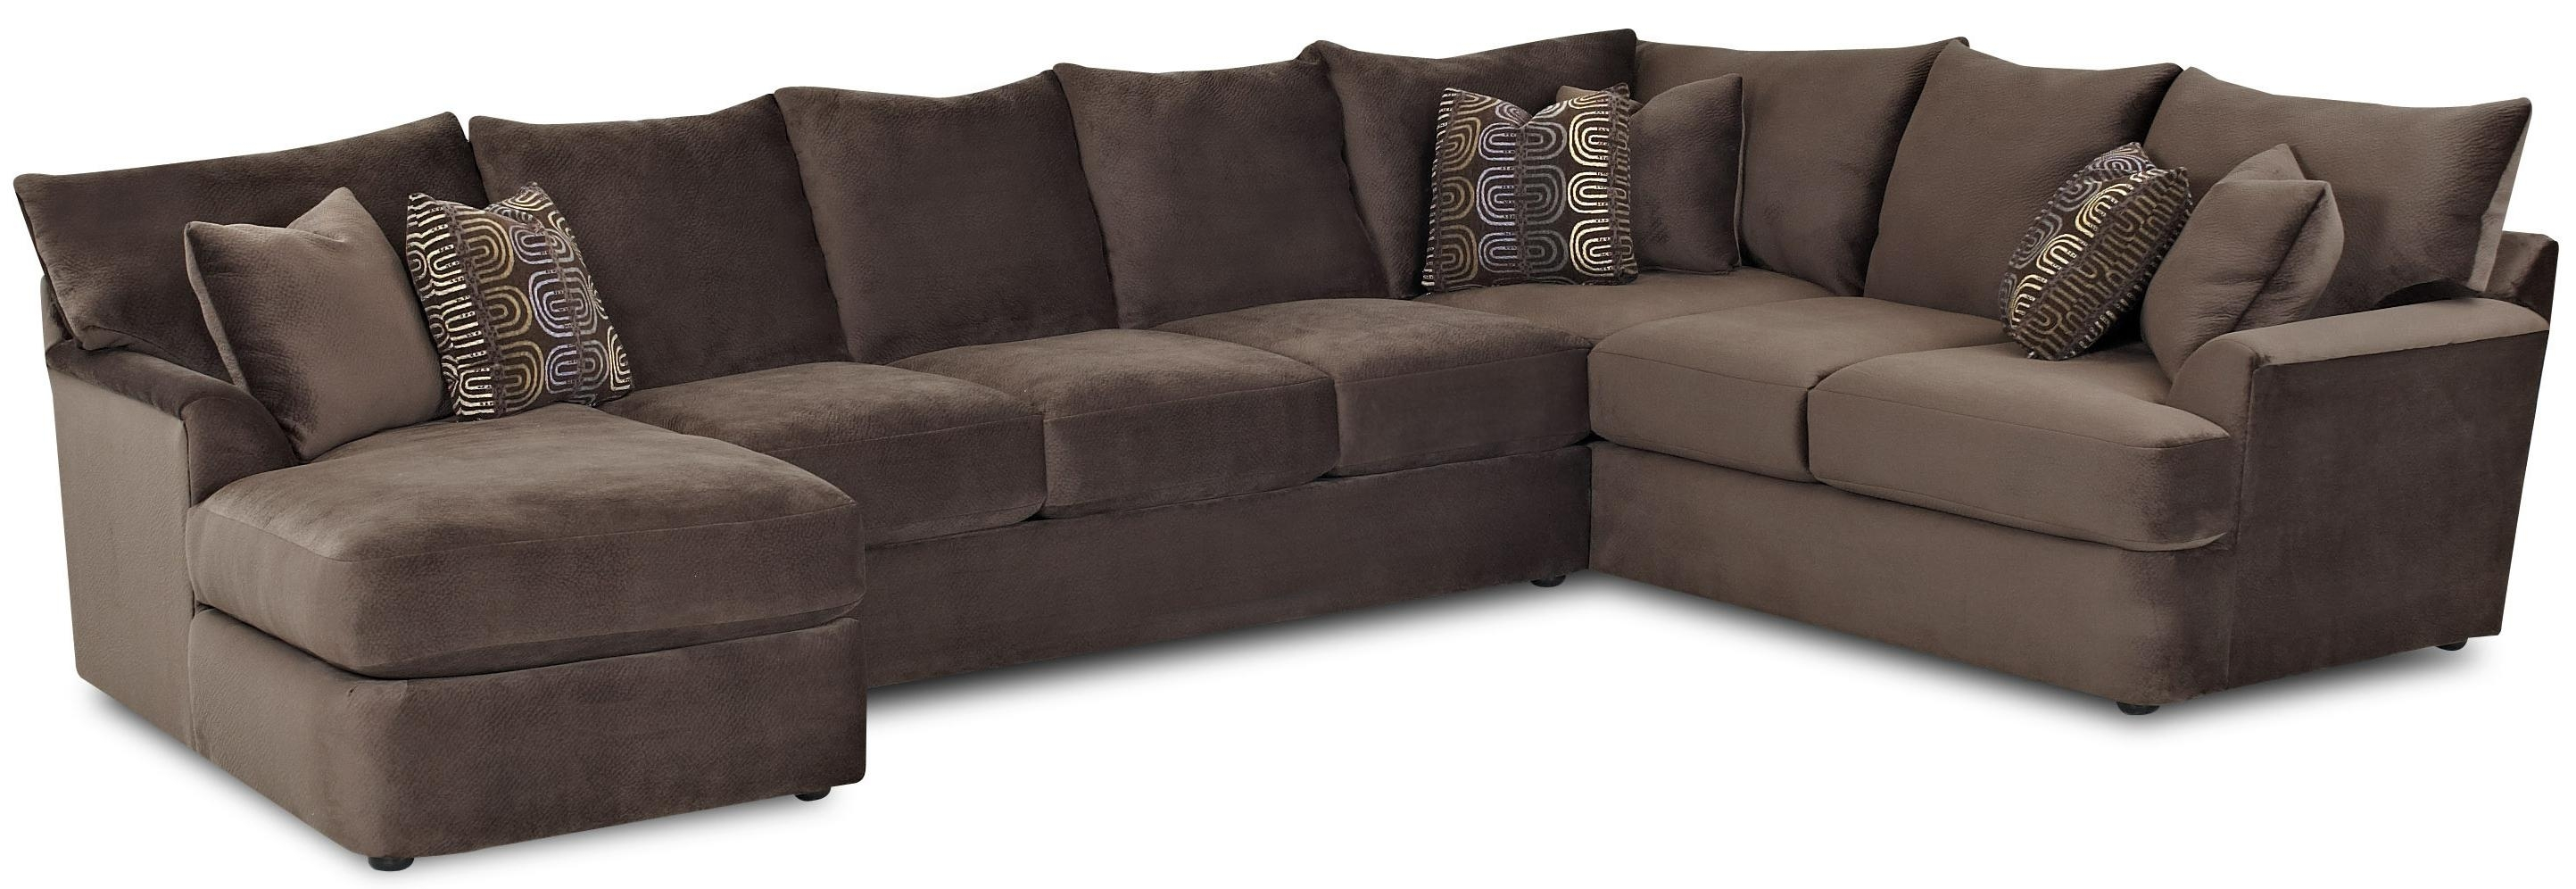 L-Shaped Sectional Sofa With Left Chaiseklaussner | Wolf And within Sectional Sofas That Can Be Rearranged (Image 4 of 10)